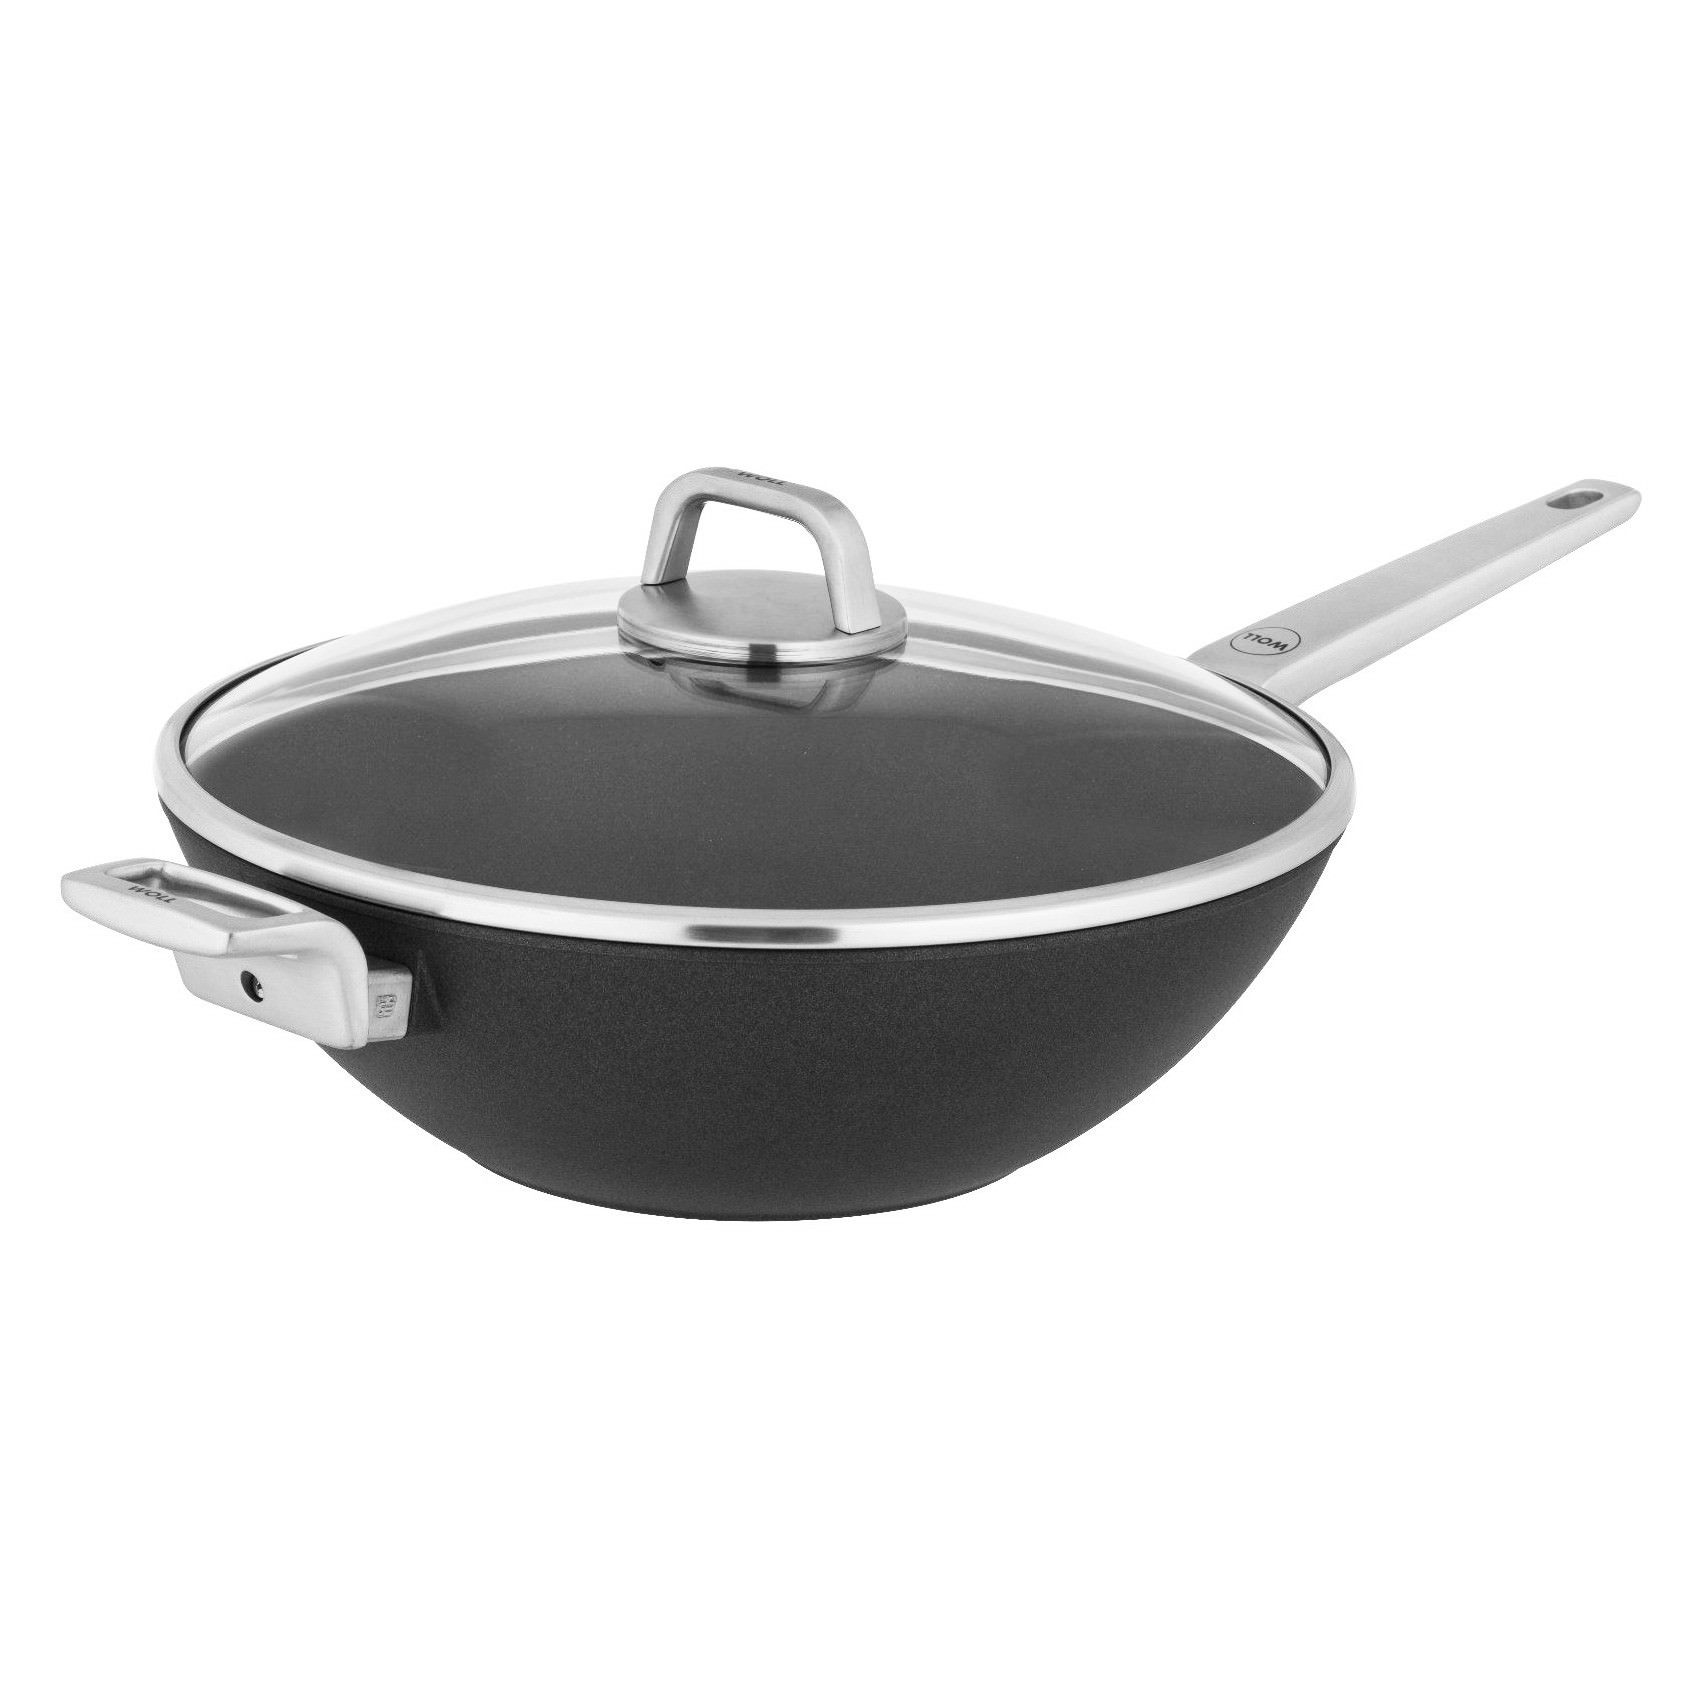 Woll Diamond Lite Pro Induction Wok with Lid, 34cm